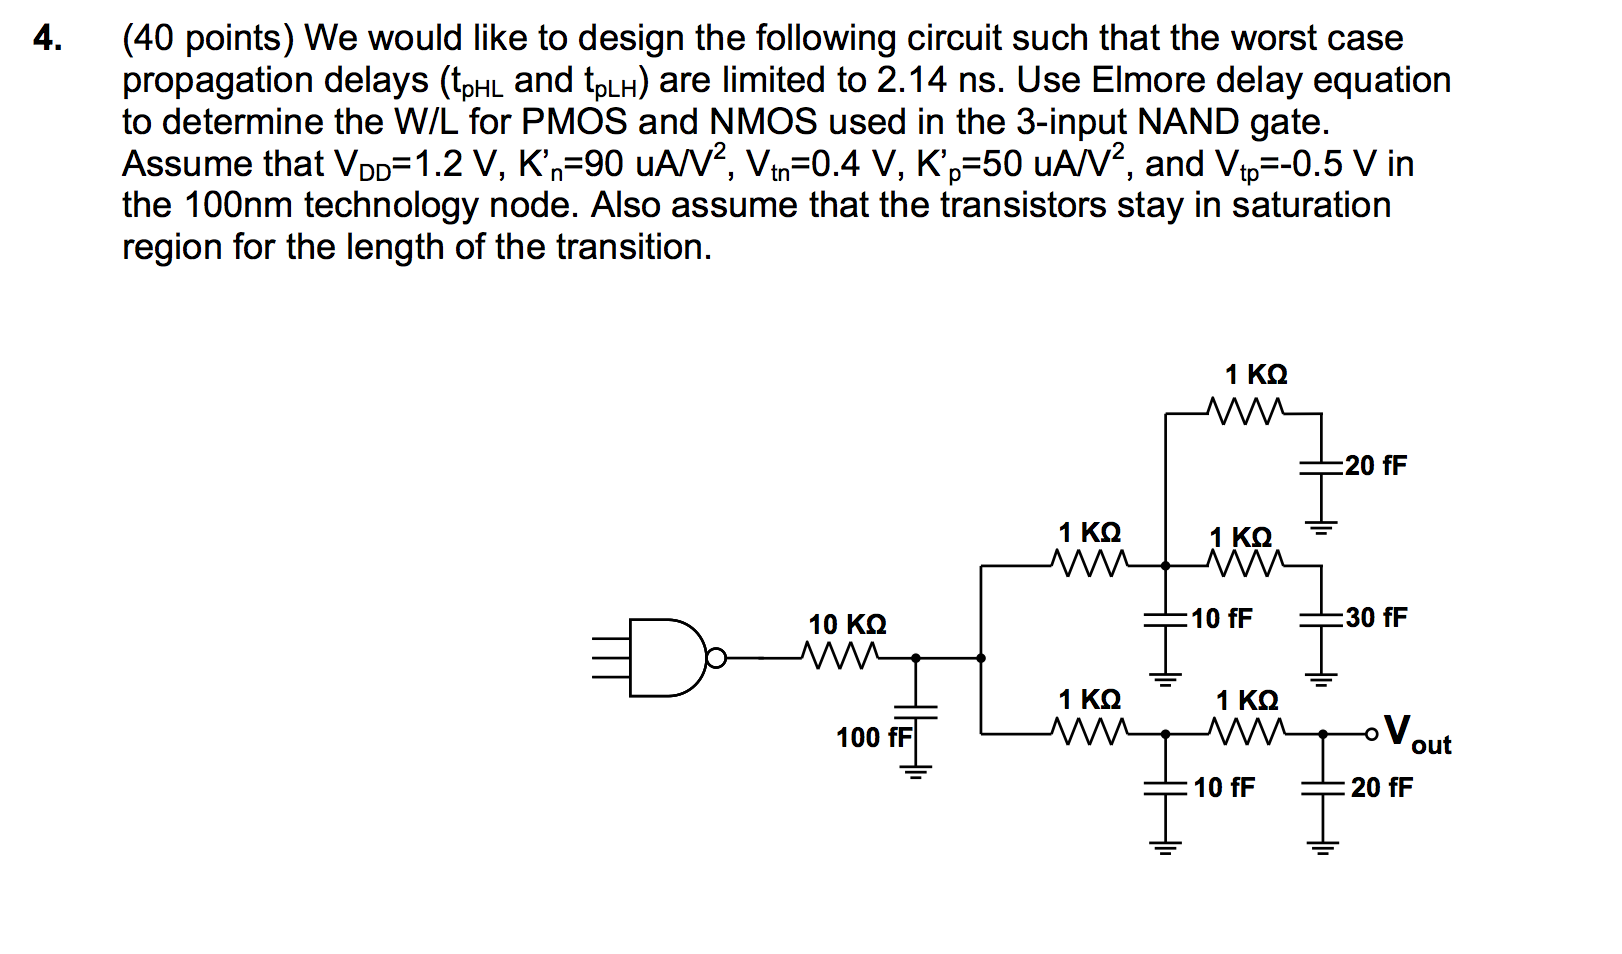 We would like to design the following circuit such